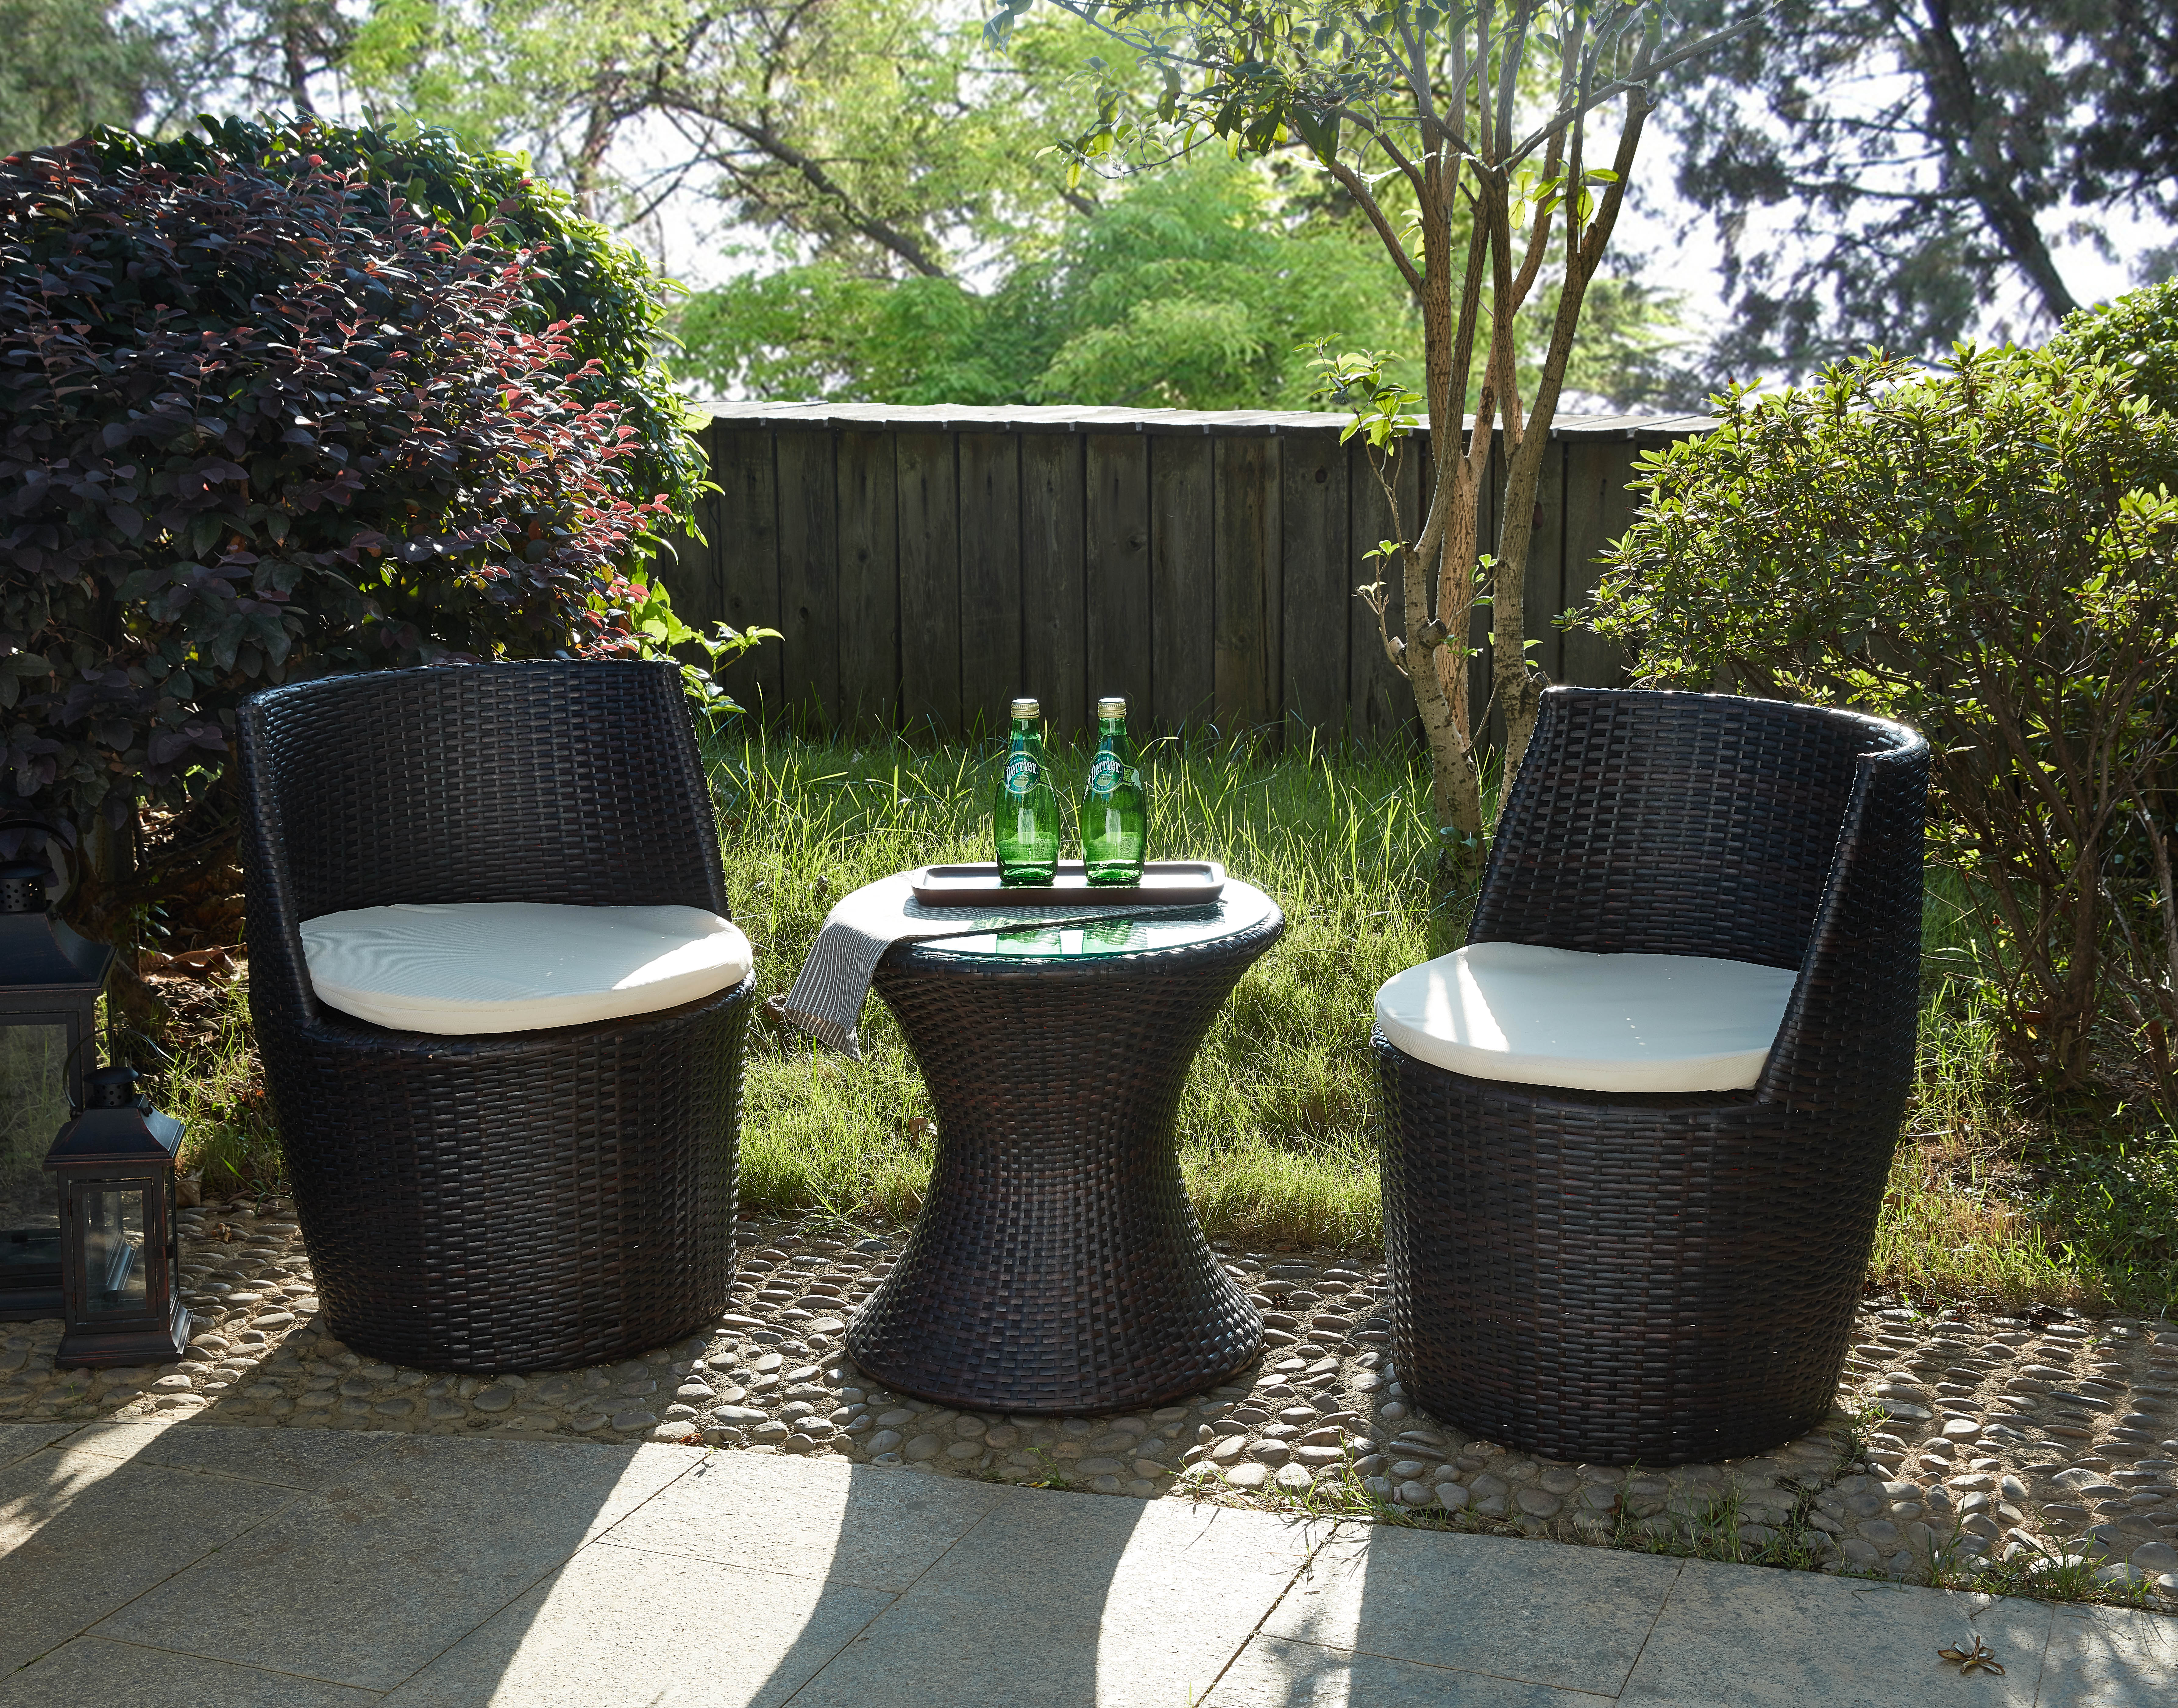 Details About Verona 3 Pc Rattan Garden Patio Furniture Vase Set Table 2 Chairs Stackable intended for dimensions 7147 X 5605